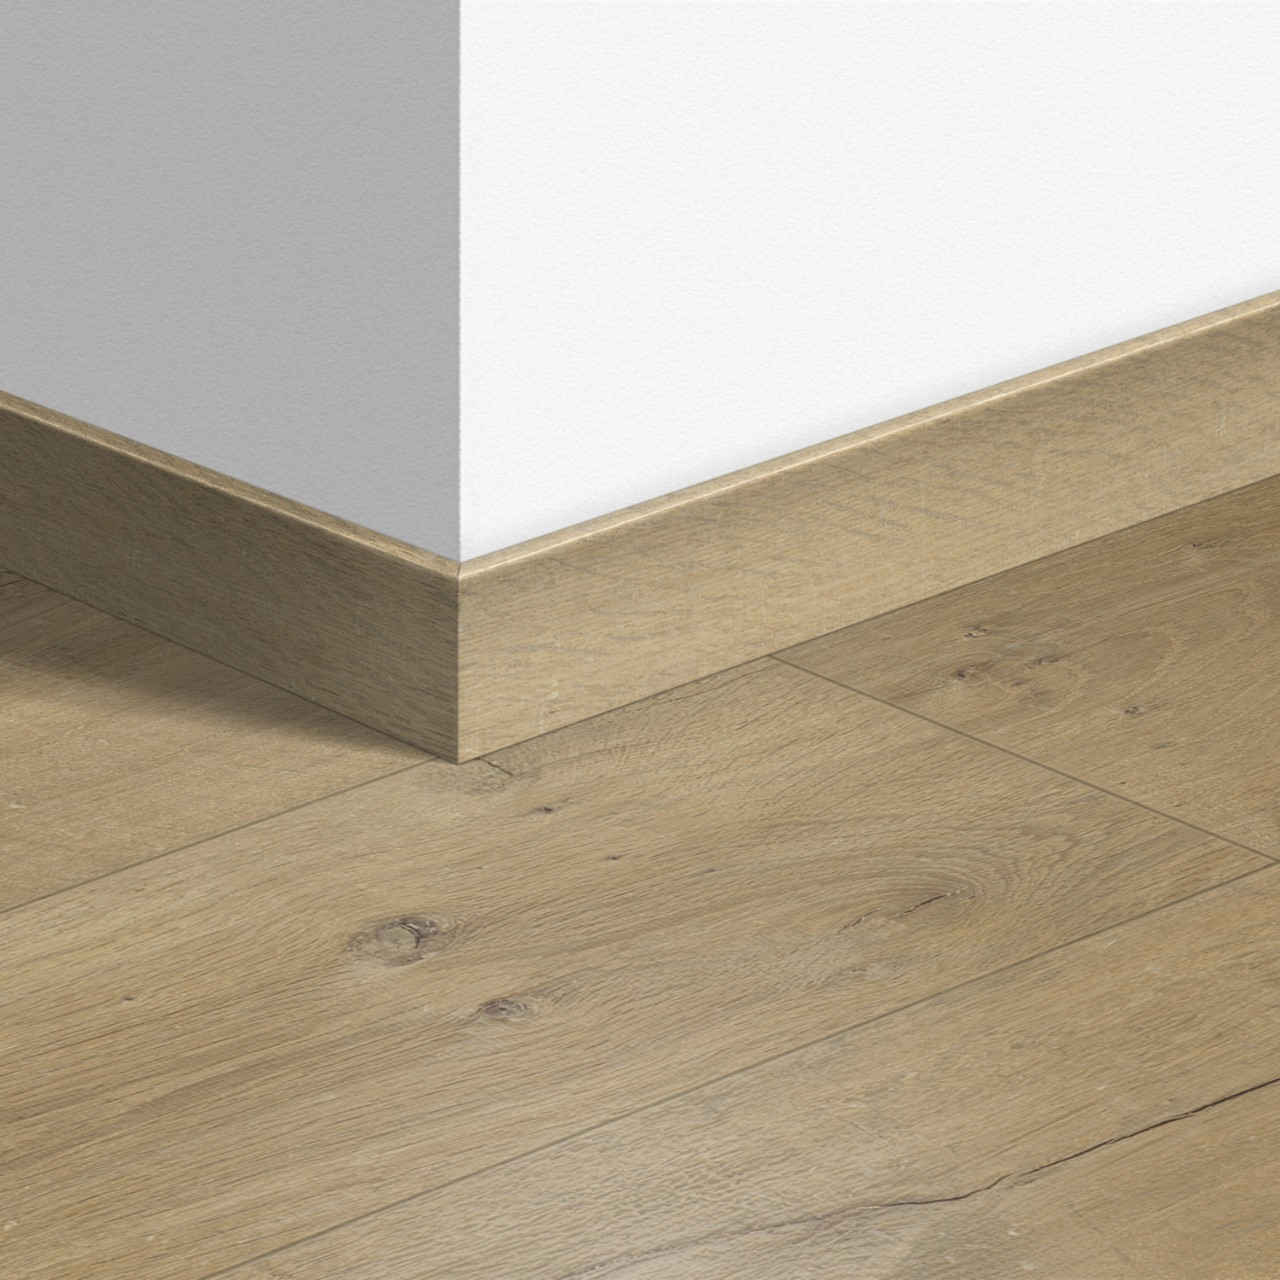 QSSK Laminate Accessories Soft oak medium QSSK01856